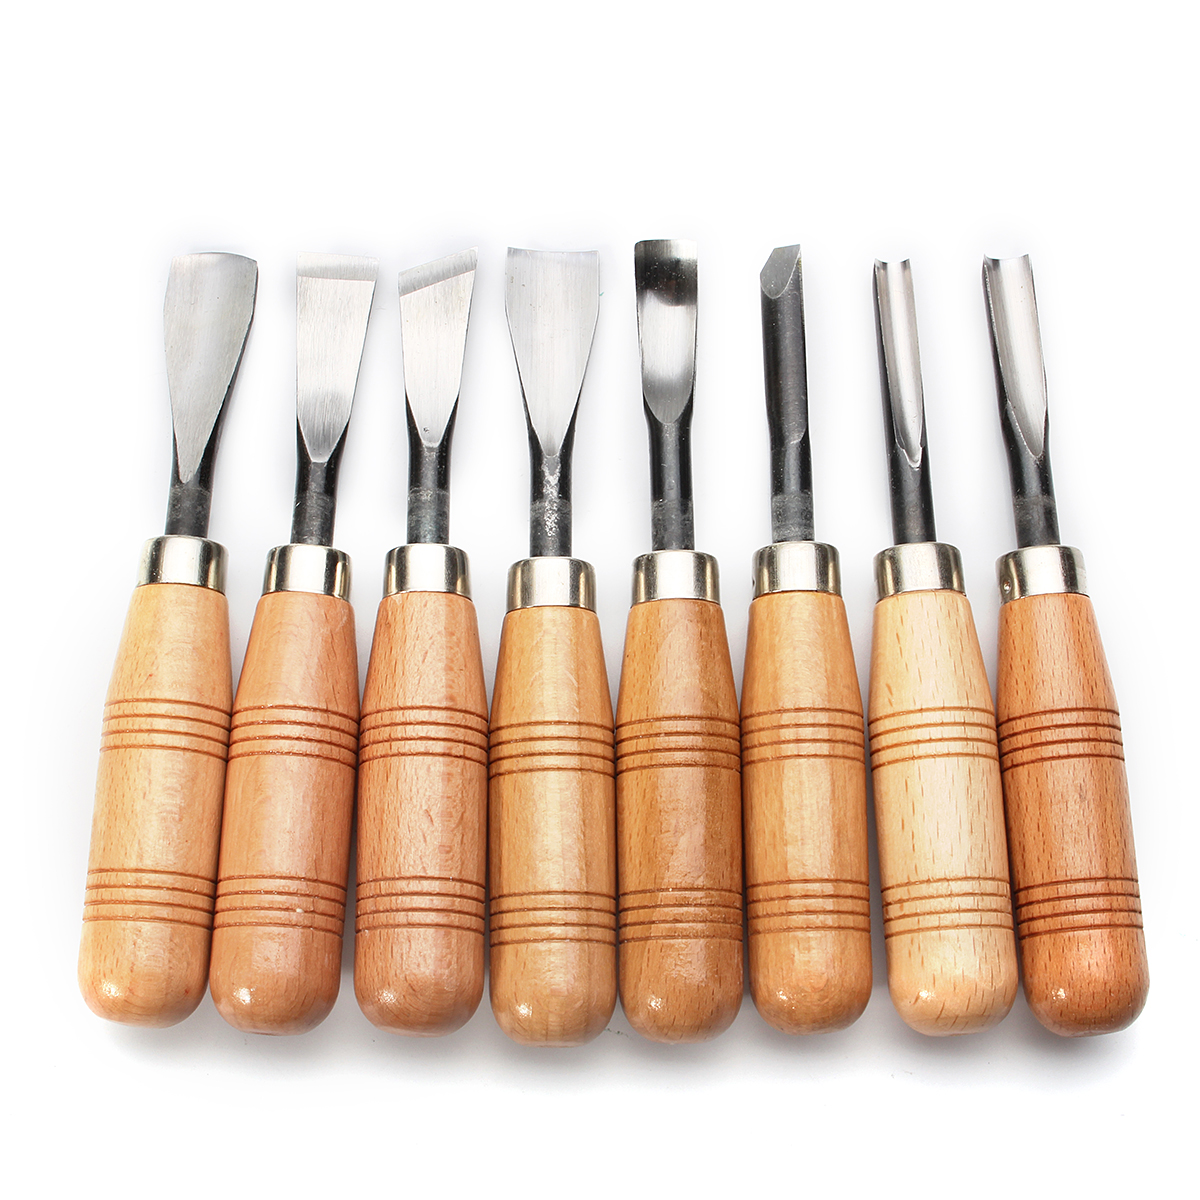 8Pcs of Professional Carving Chisels Sets Gouges Tools for Woodworking DIY with Wood Handle